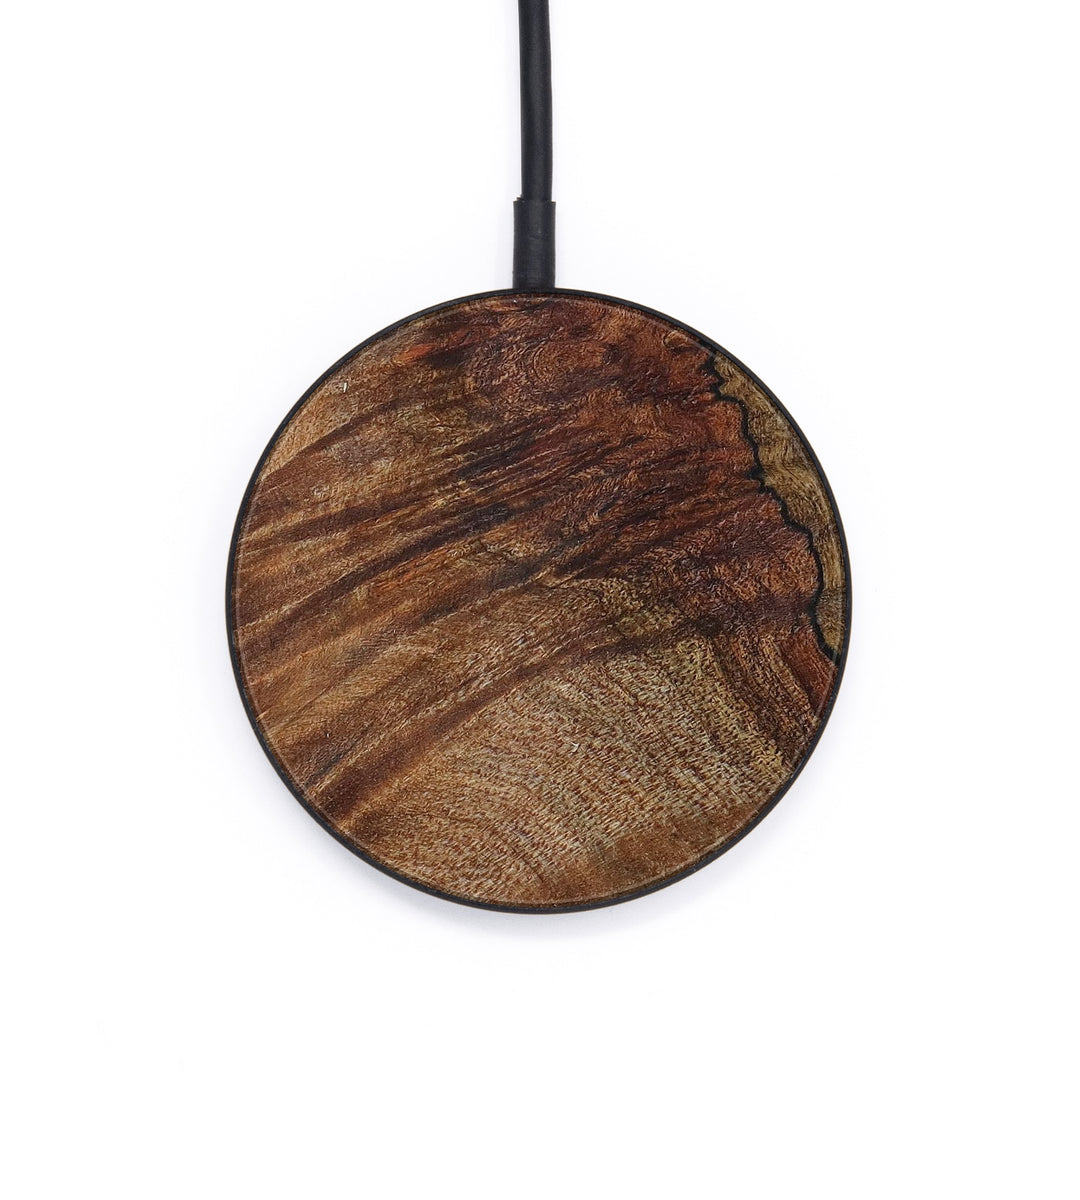 Circle Burl Wood Wireless Charger - Gayle (Maple Burl, 427443)